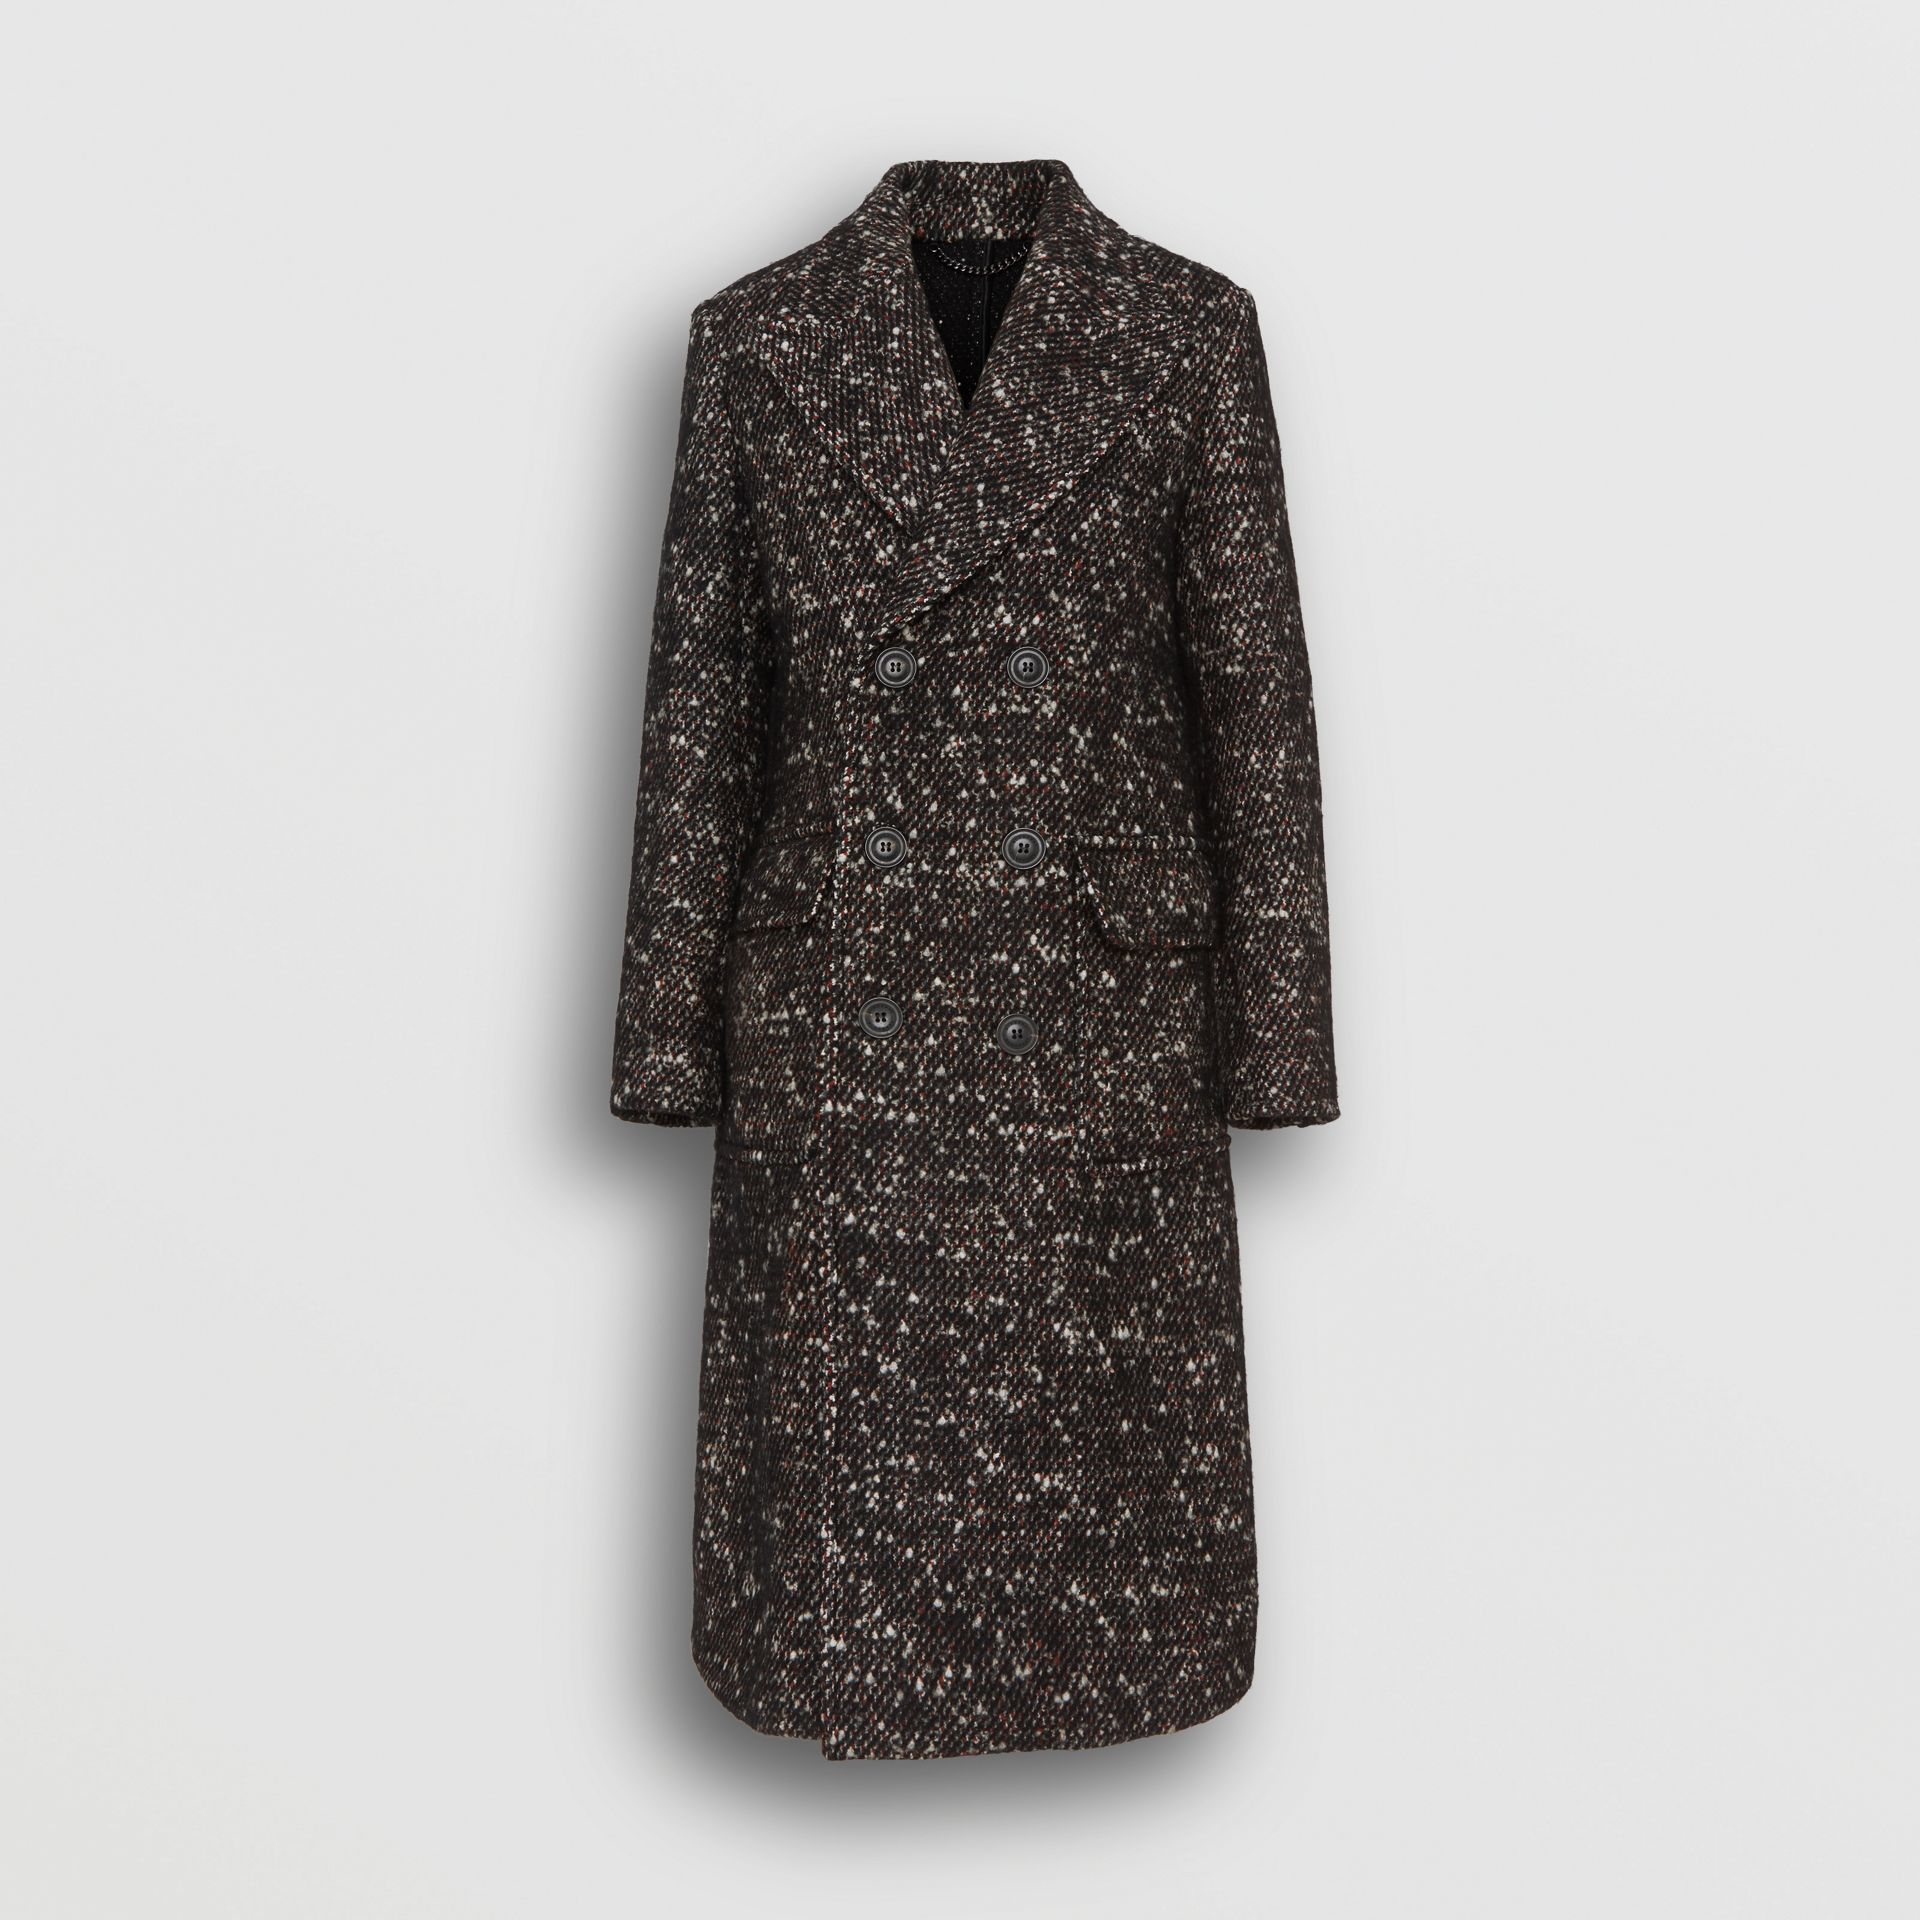 Wool Mohair Blend Tweed Tailored Coat in Black - Men | Burberry - gallery image 3